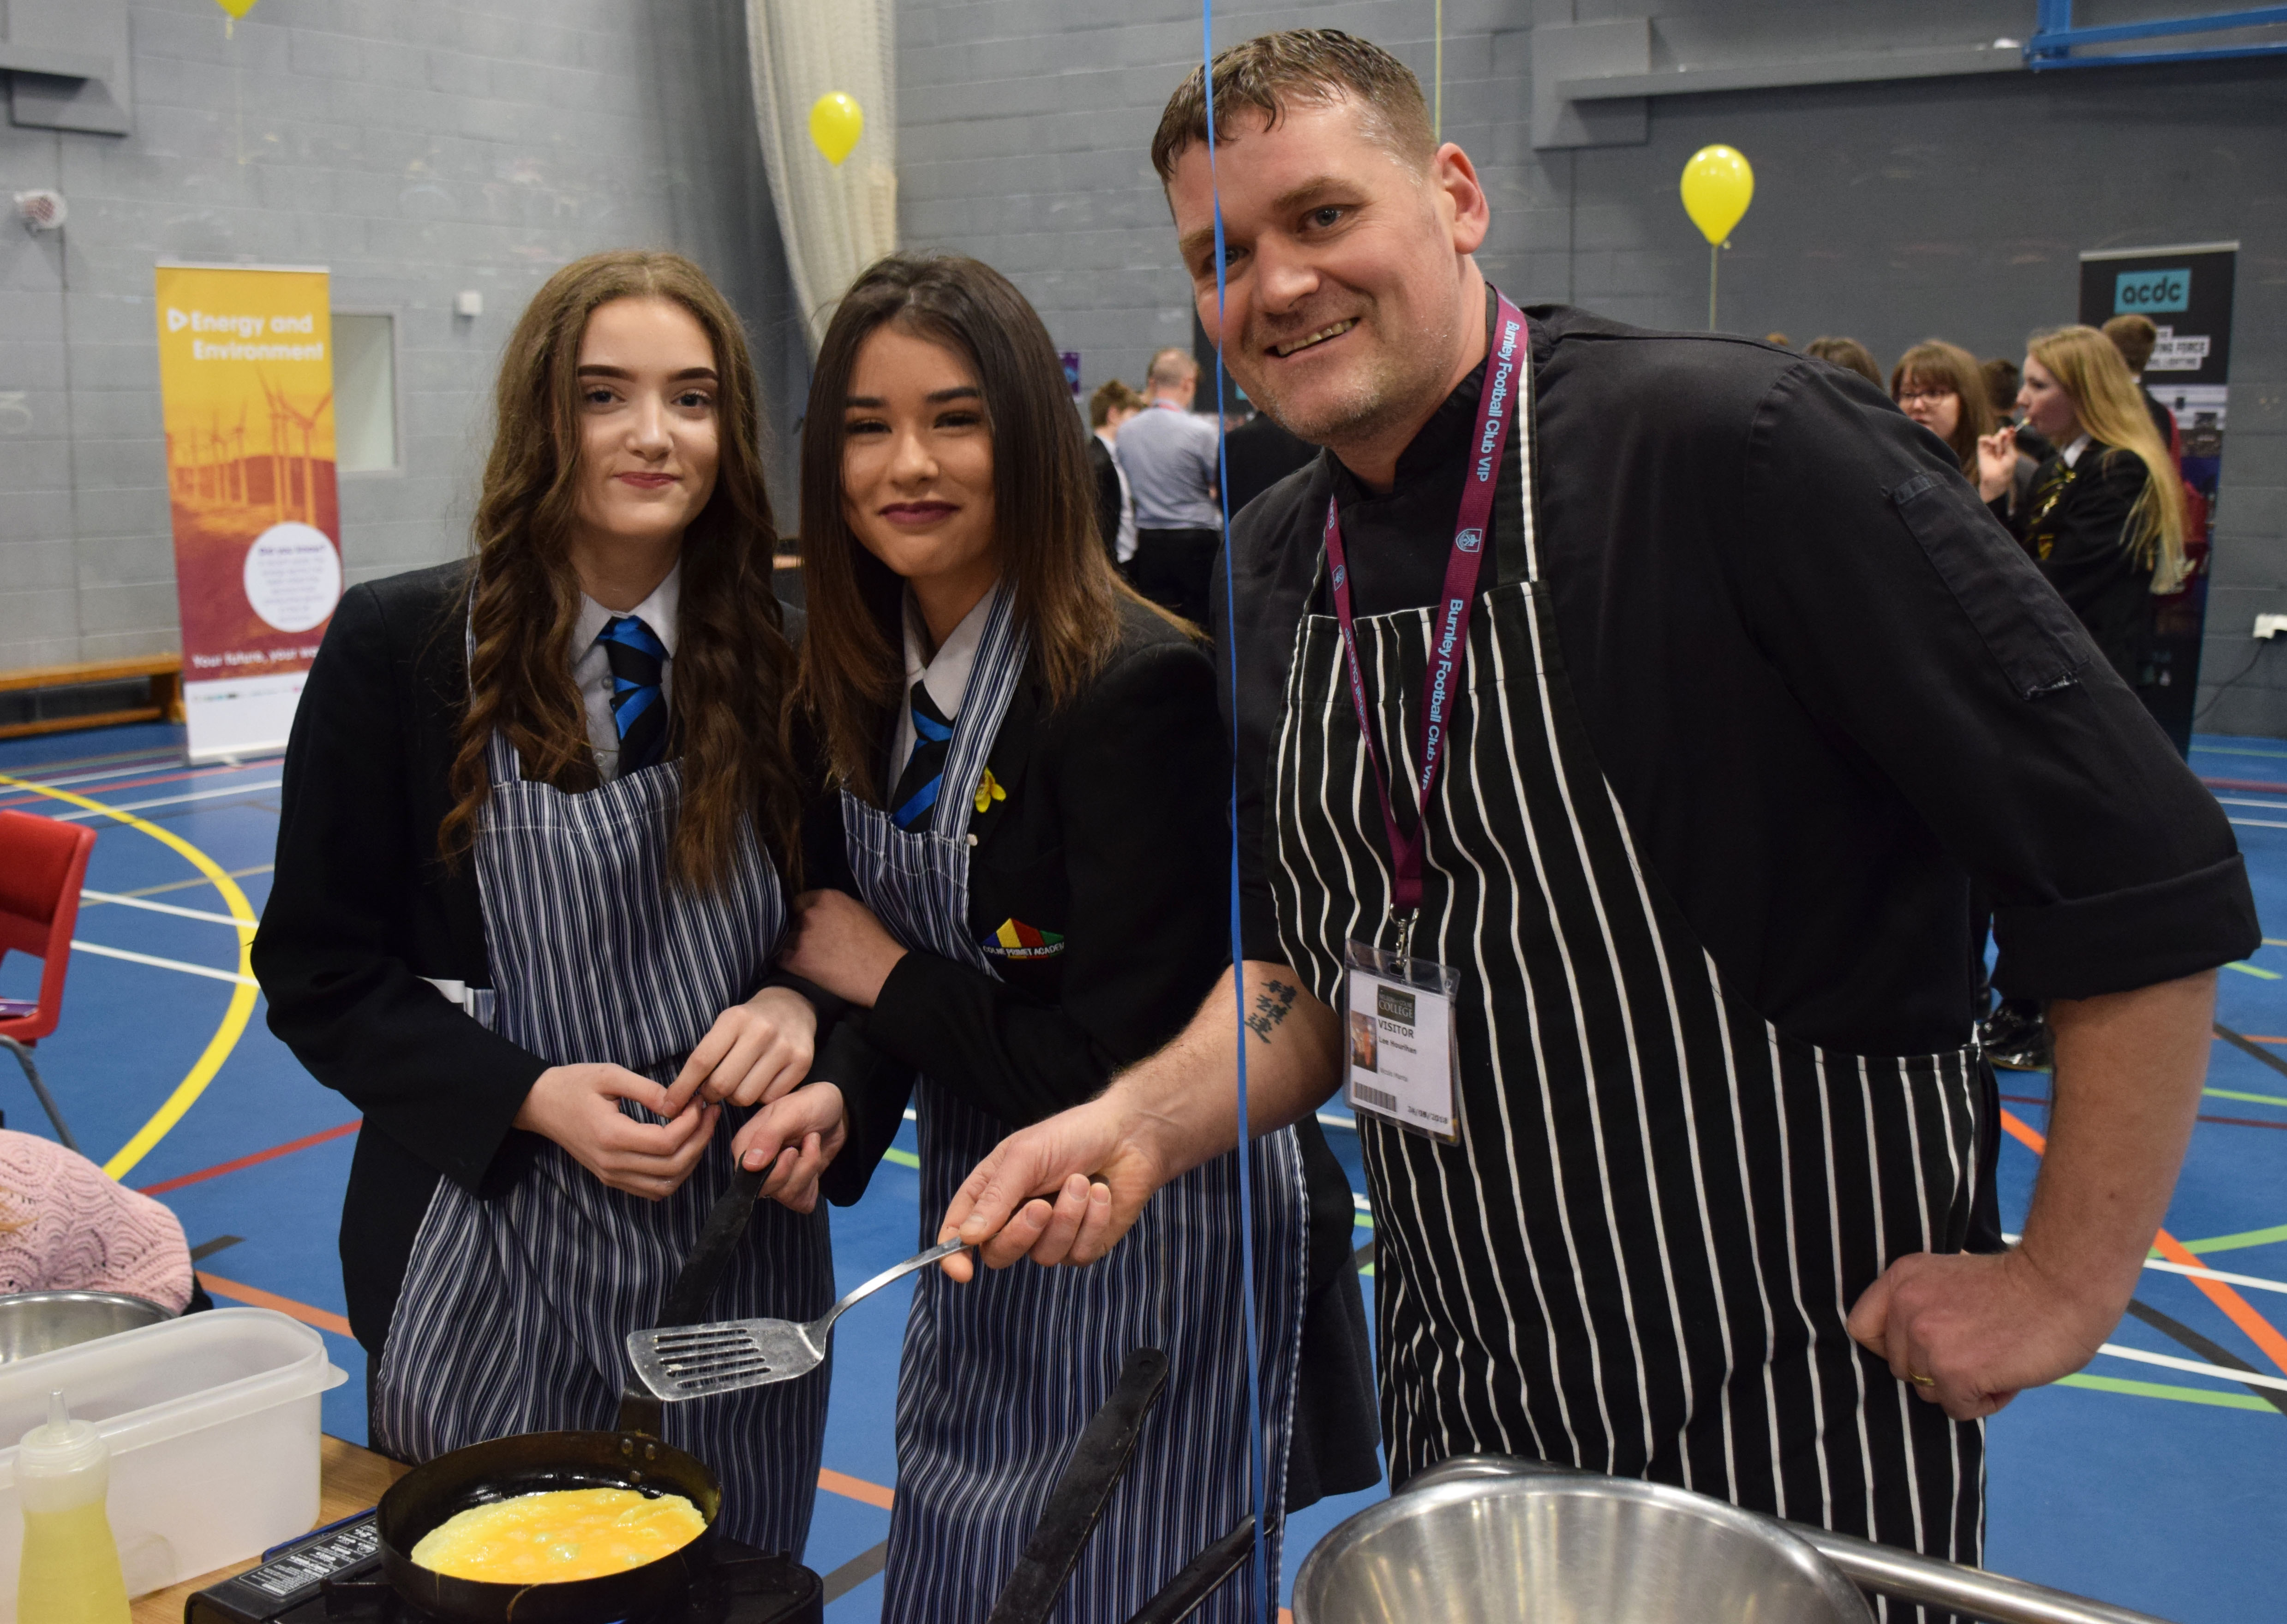 Pendle businesses showcase local careers